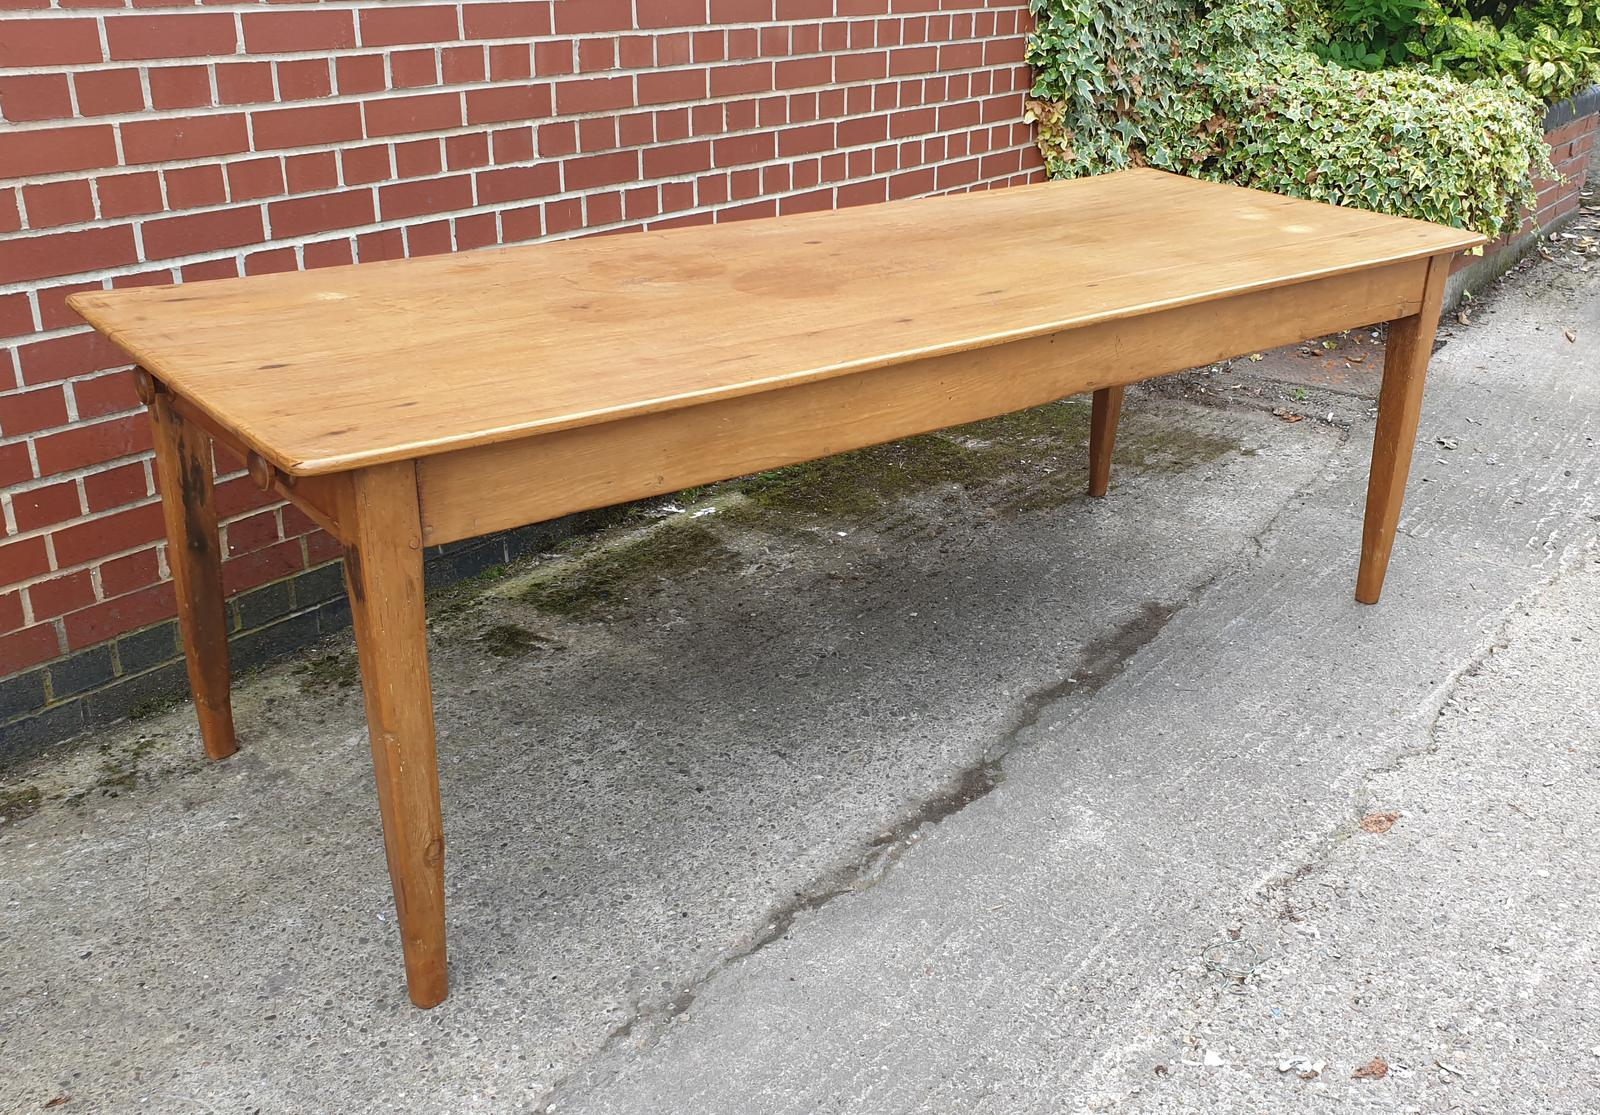 French Fruitwood Kitchen Dining Table (1 of 1)